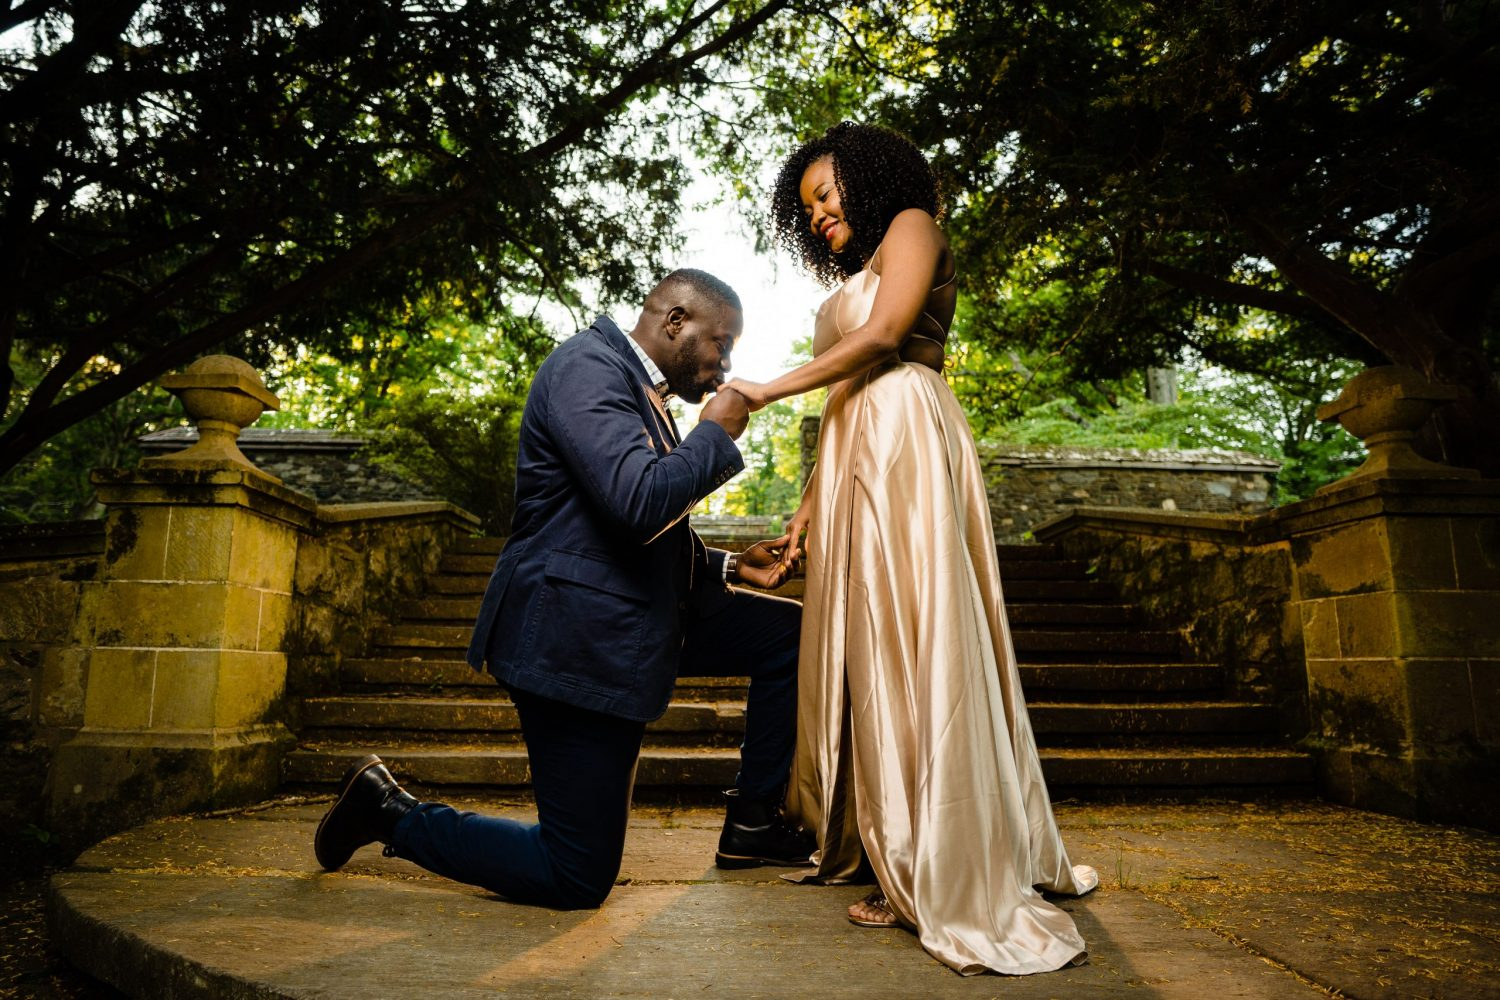 Kneeling down kissing hand stone stairs in background